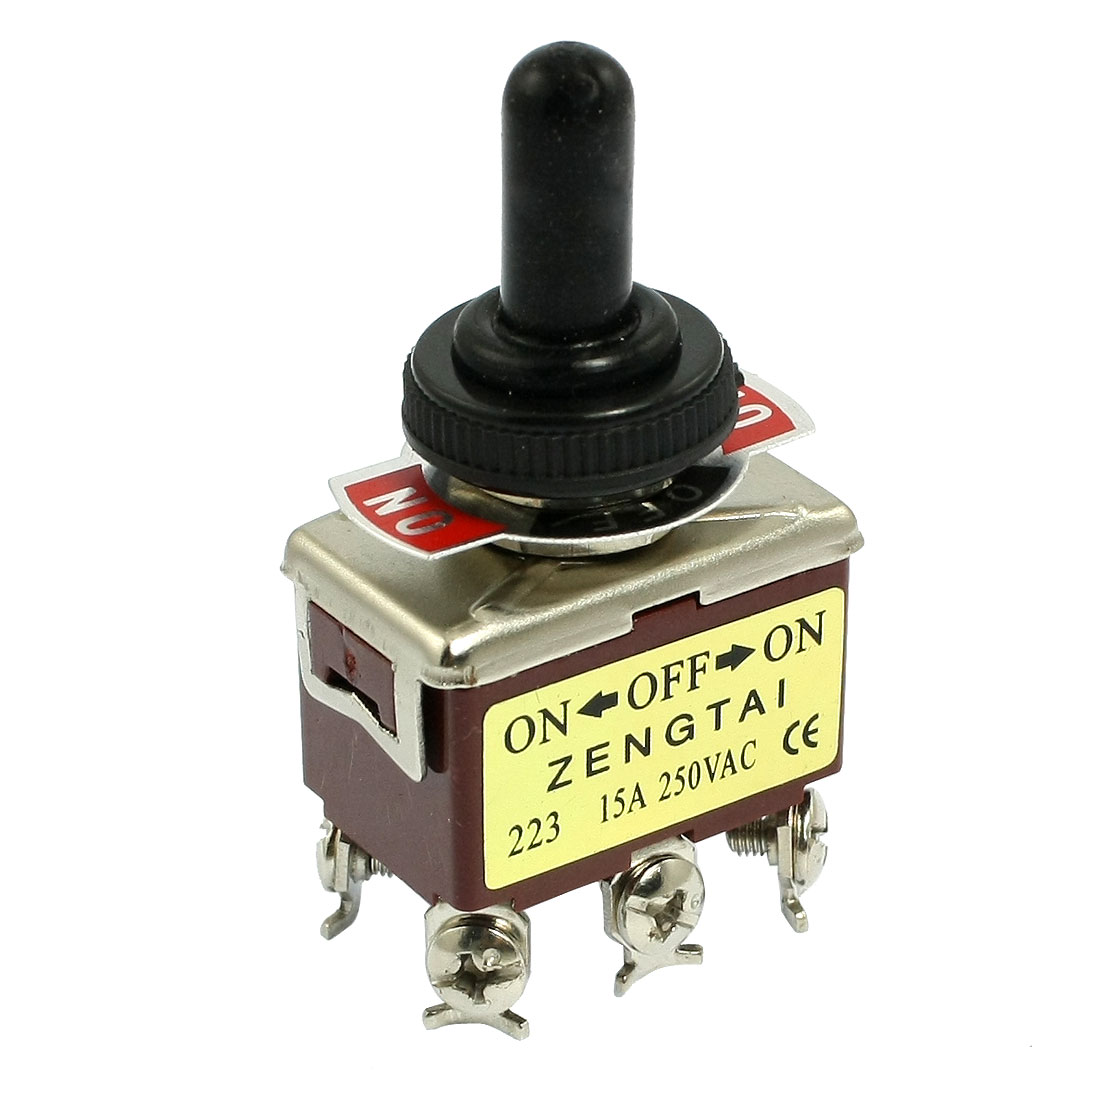 Unique Bargains AC 250V 15A 6 Pin Momentary DPDT On/Off/On Toggle Switch